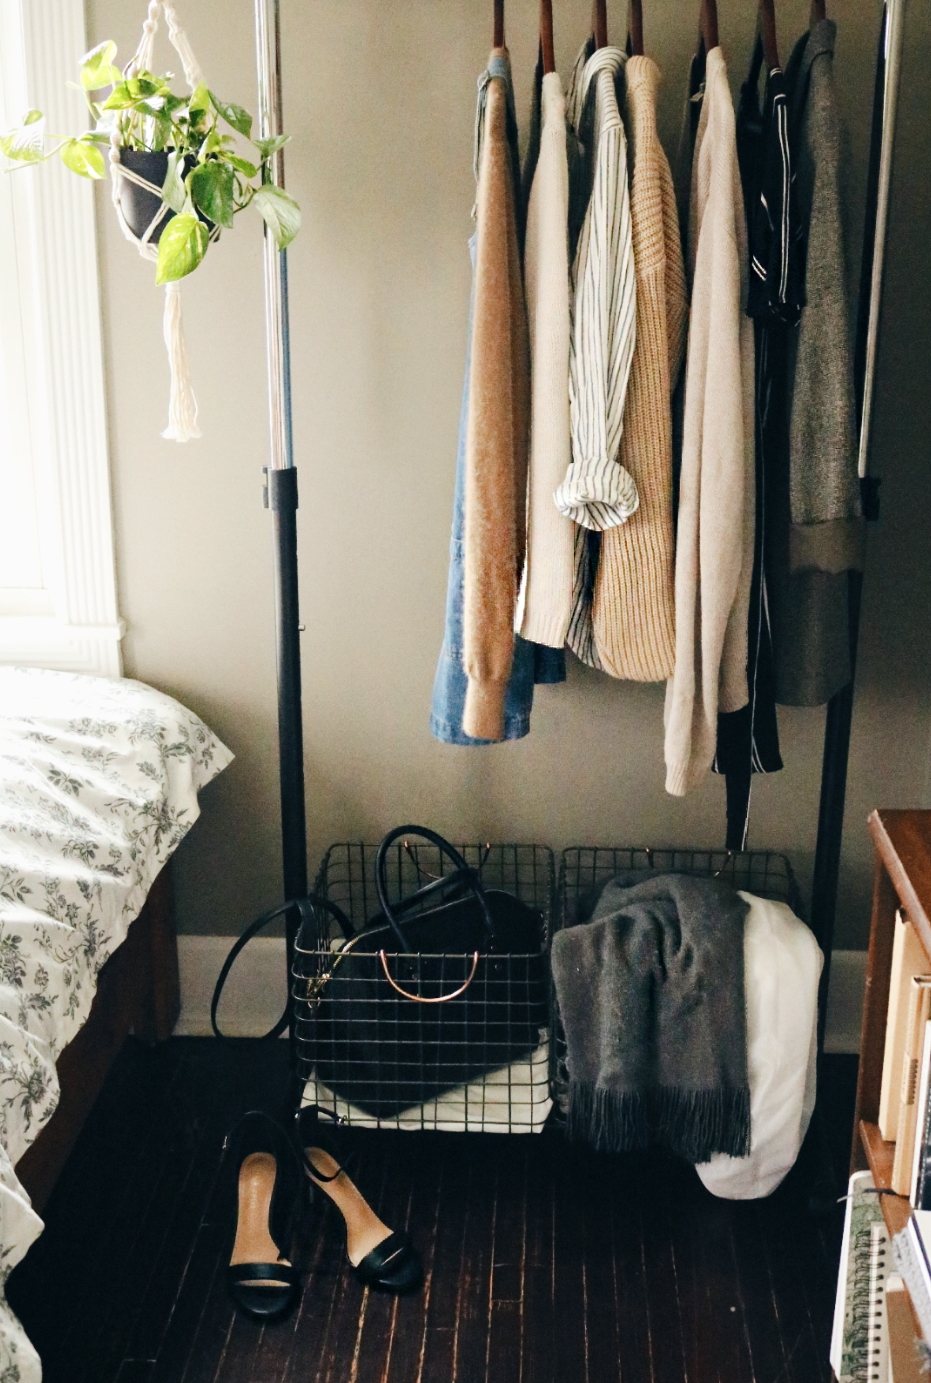 a look at my own space—I love to use my everyday belongings (like clothing accessories) as decor when I can.